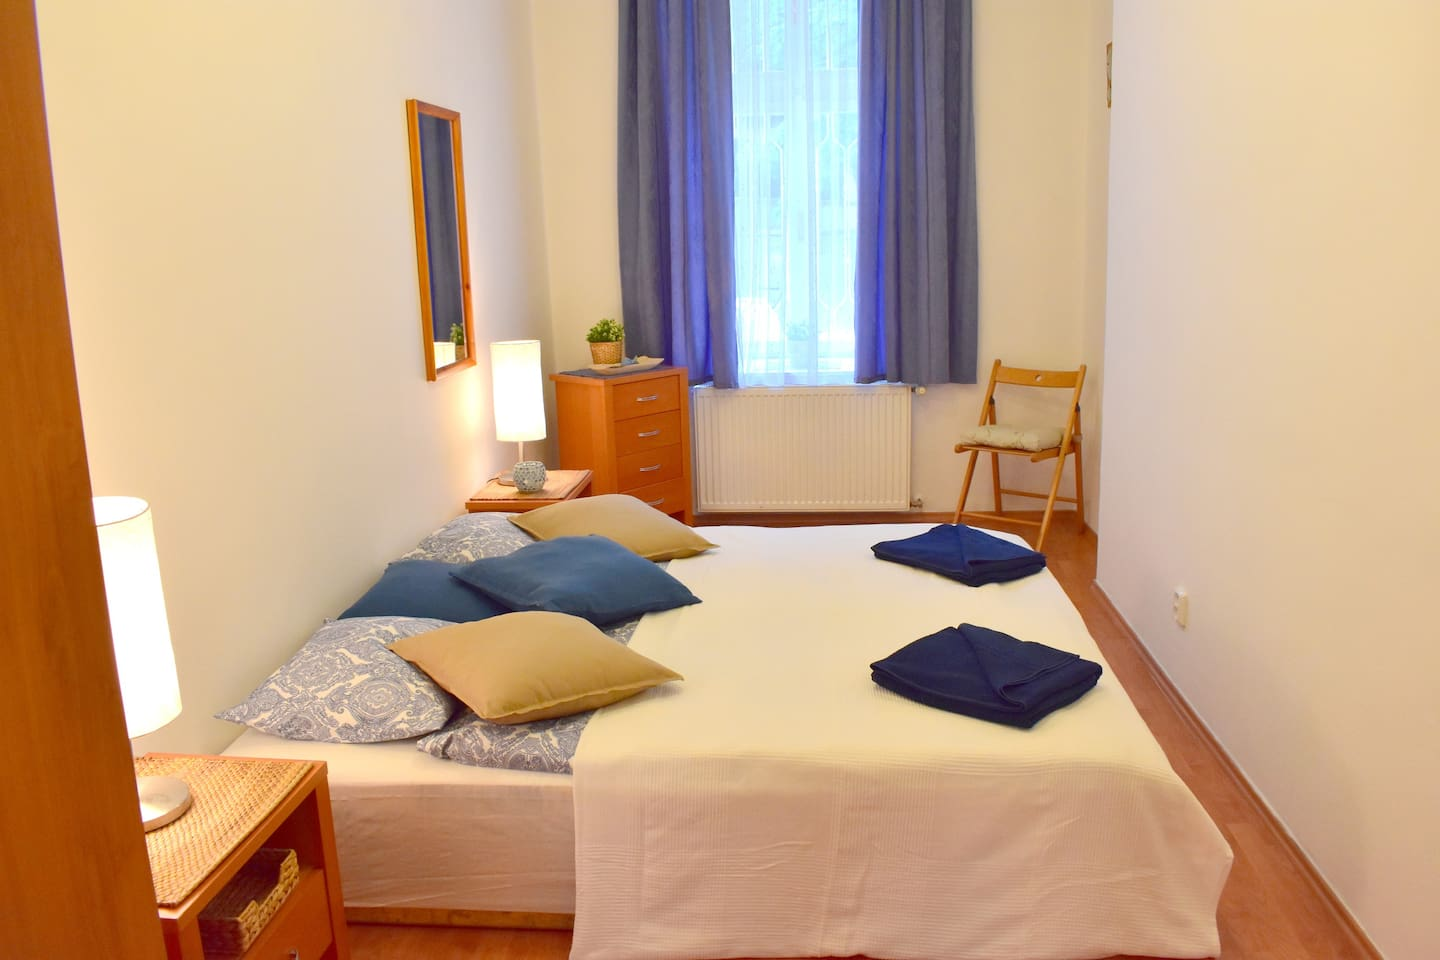 WELCOME TO OUR BLUE & BEIGE BUBENEC APARTMENT :)